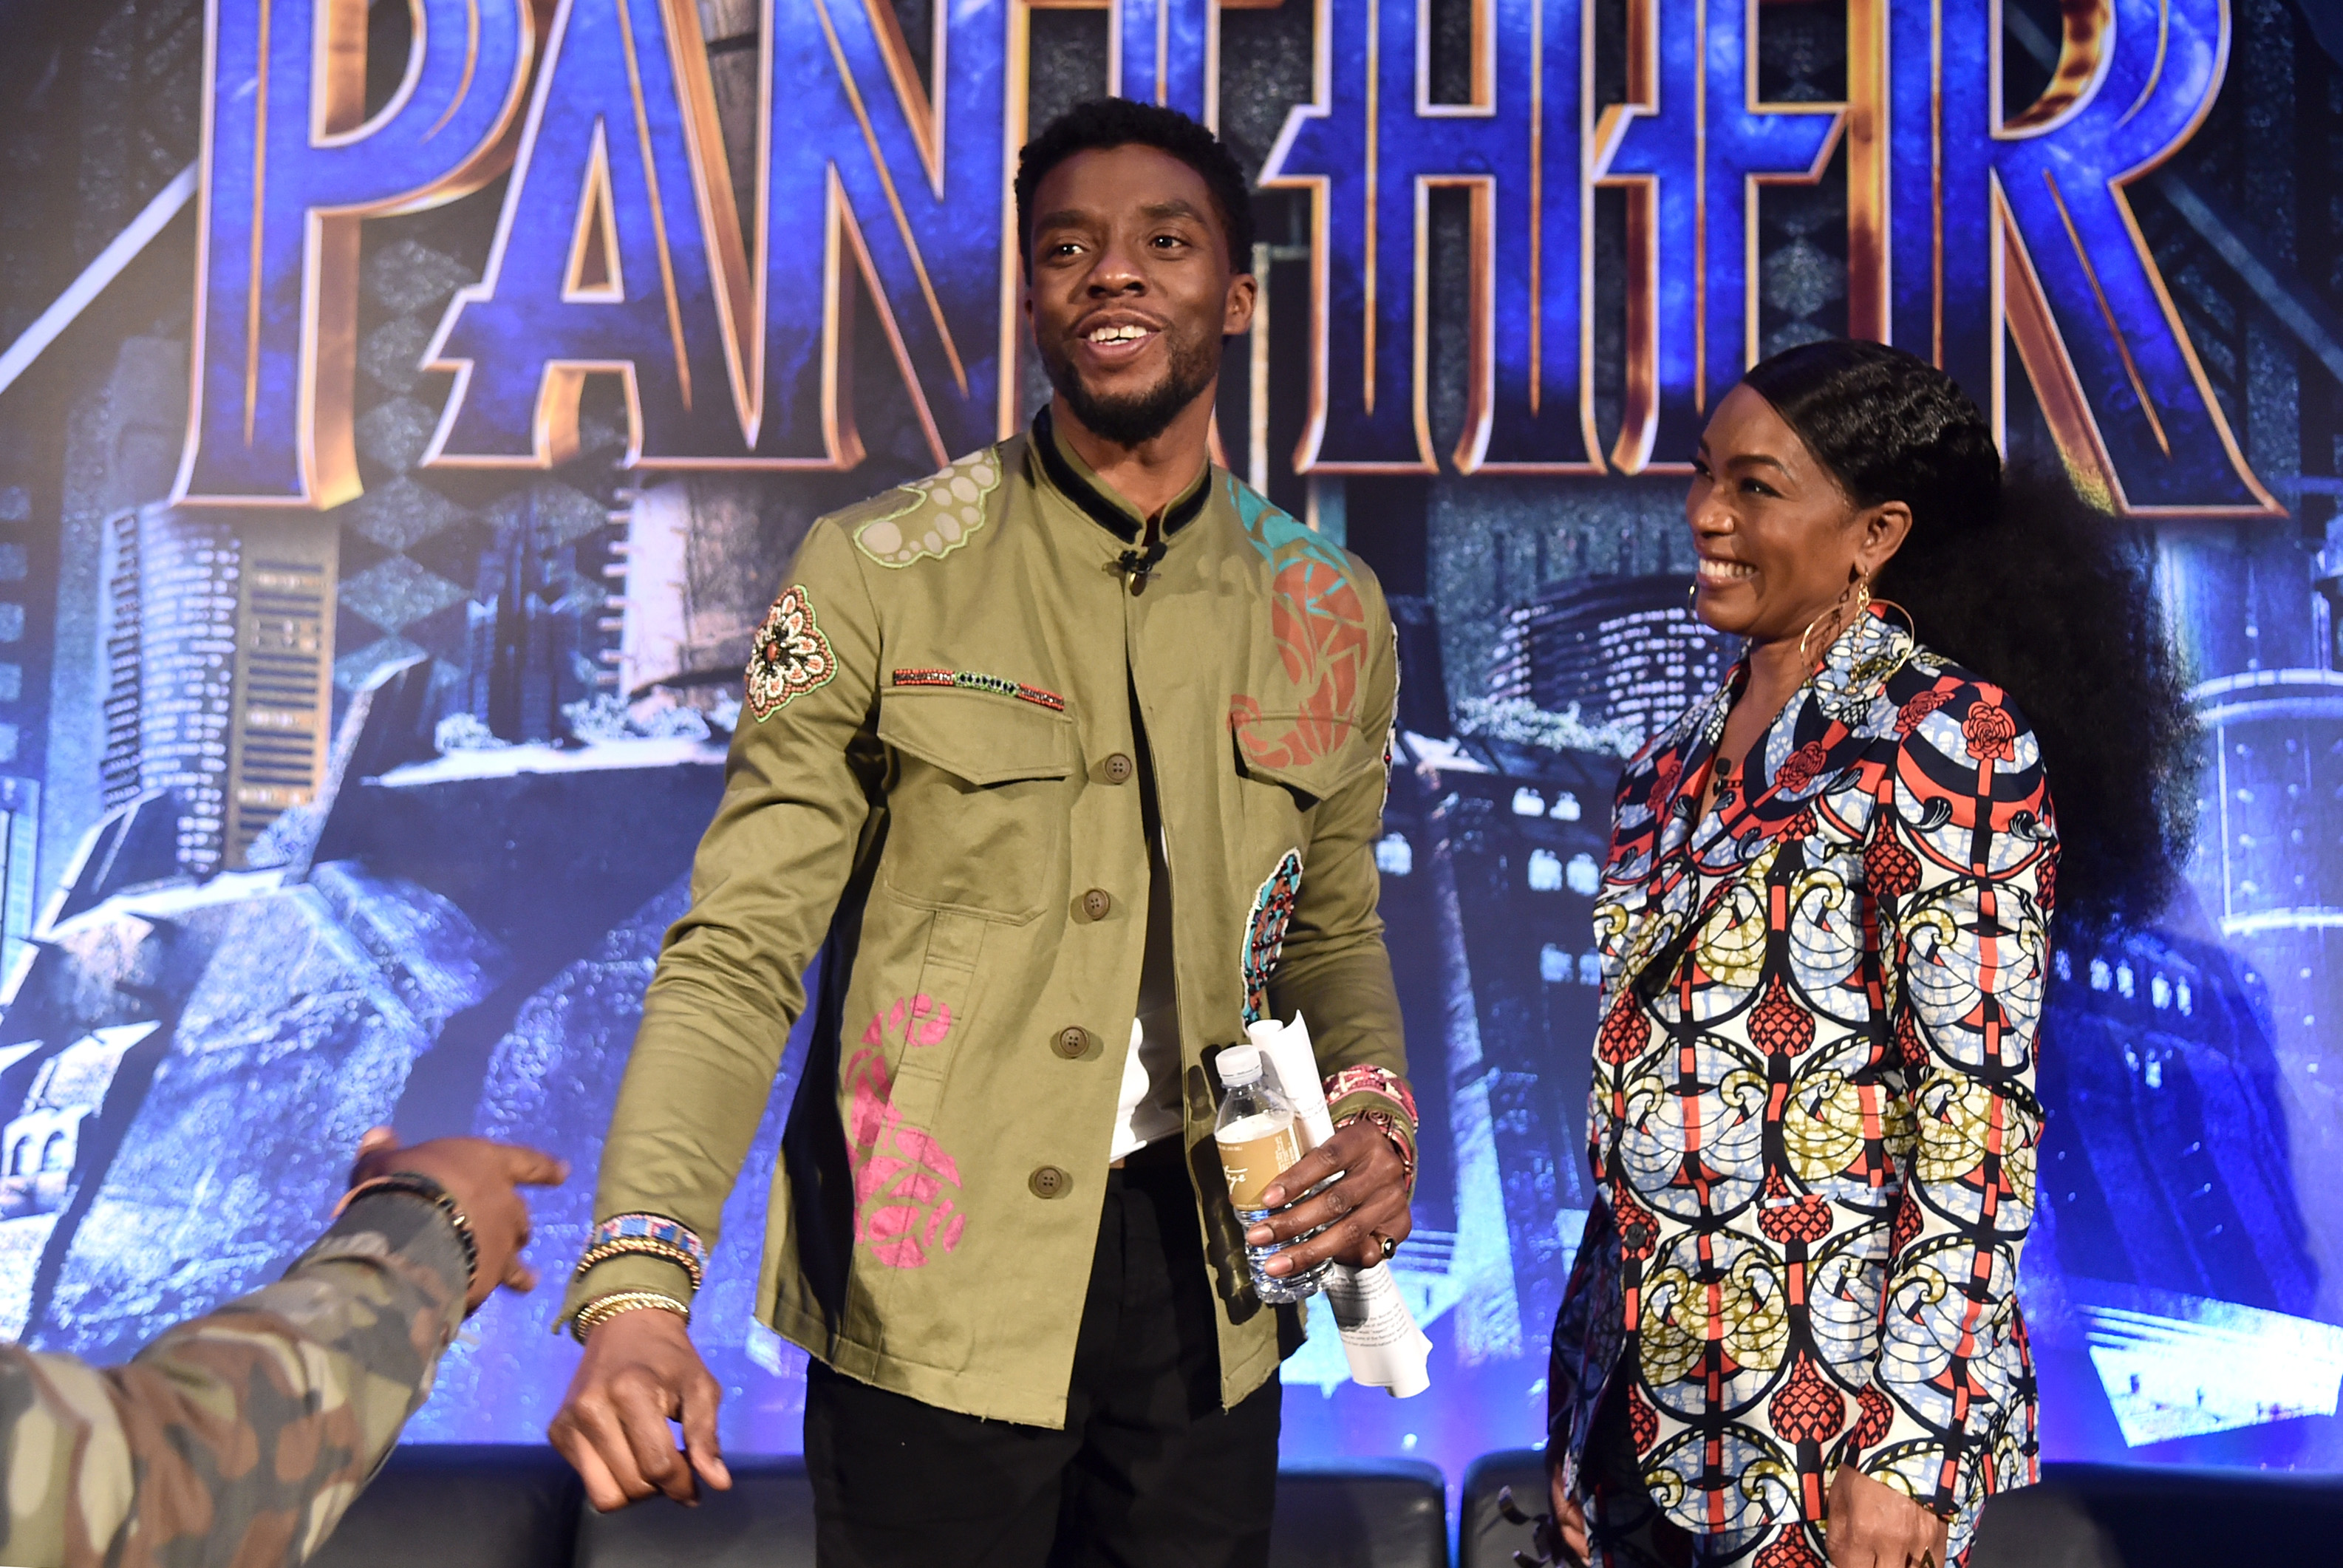 BEVERLY HILLS, CA - JANUARY 30: Actors Chadwick Boseman (L) and Angela Bassett attend the Marvel Studios' BLACK PANTHER Global Junket Press Conference on January 30, 2018 at Montage Beverly Hills in Beverly Hills, California.